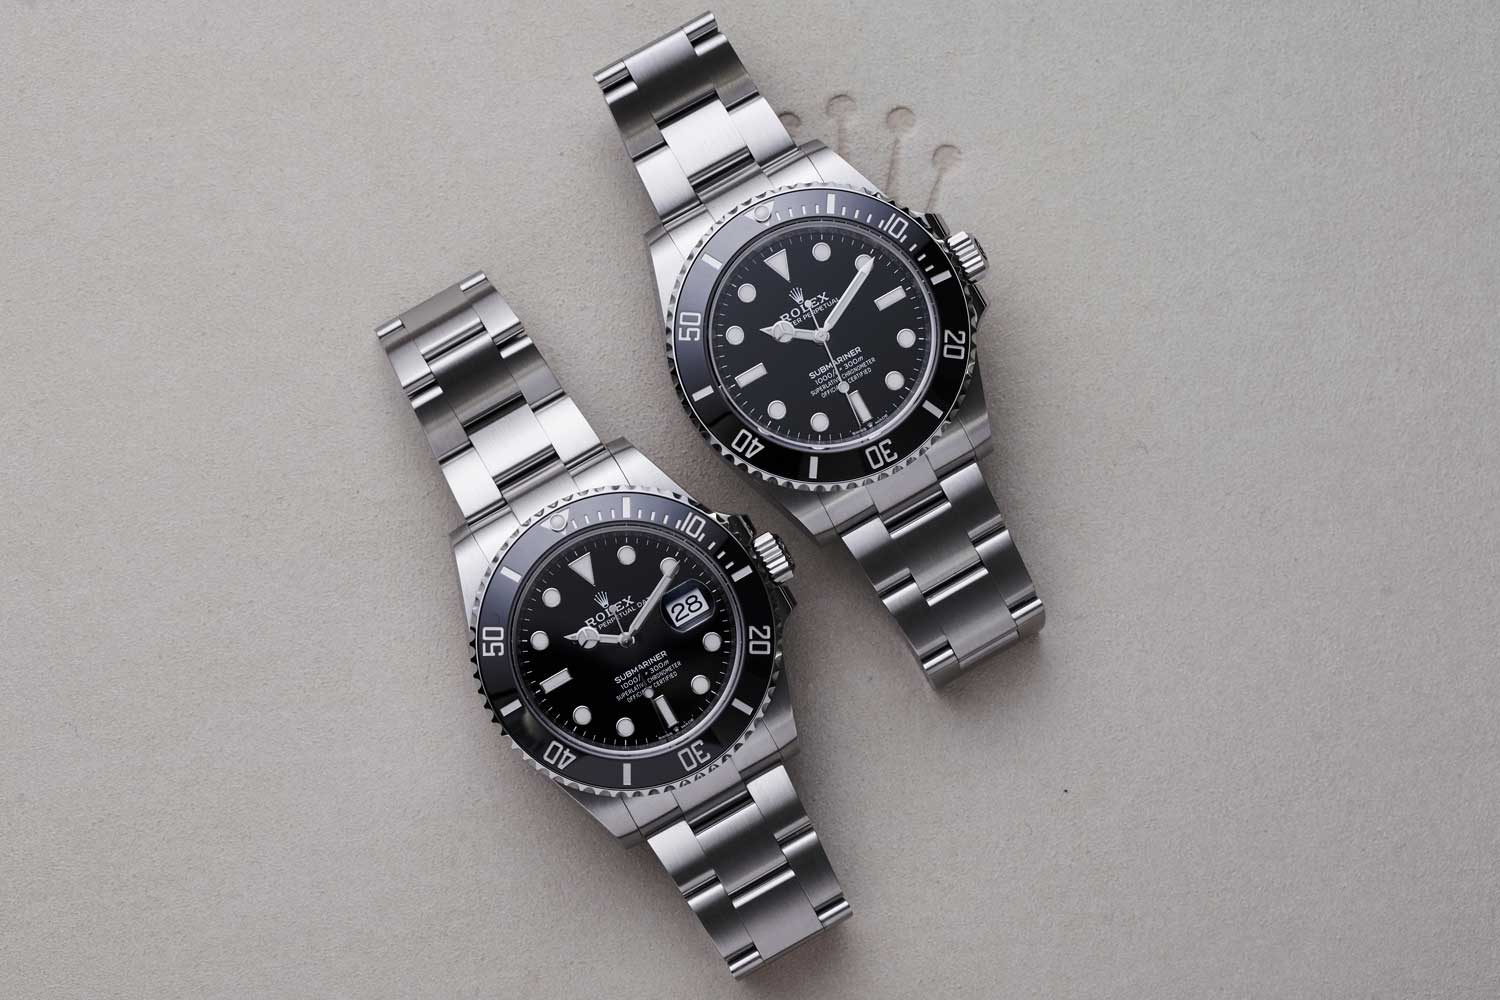 The 2020 Oyster Perpetual Submariner with date on the left, the ref. 126610 and the no-date ref. 124060 on the right in Oystersteel (©Revolution)